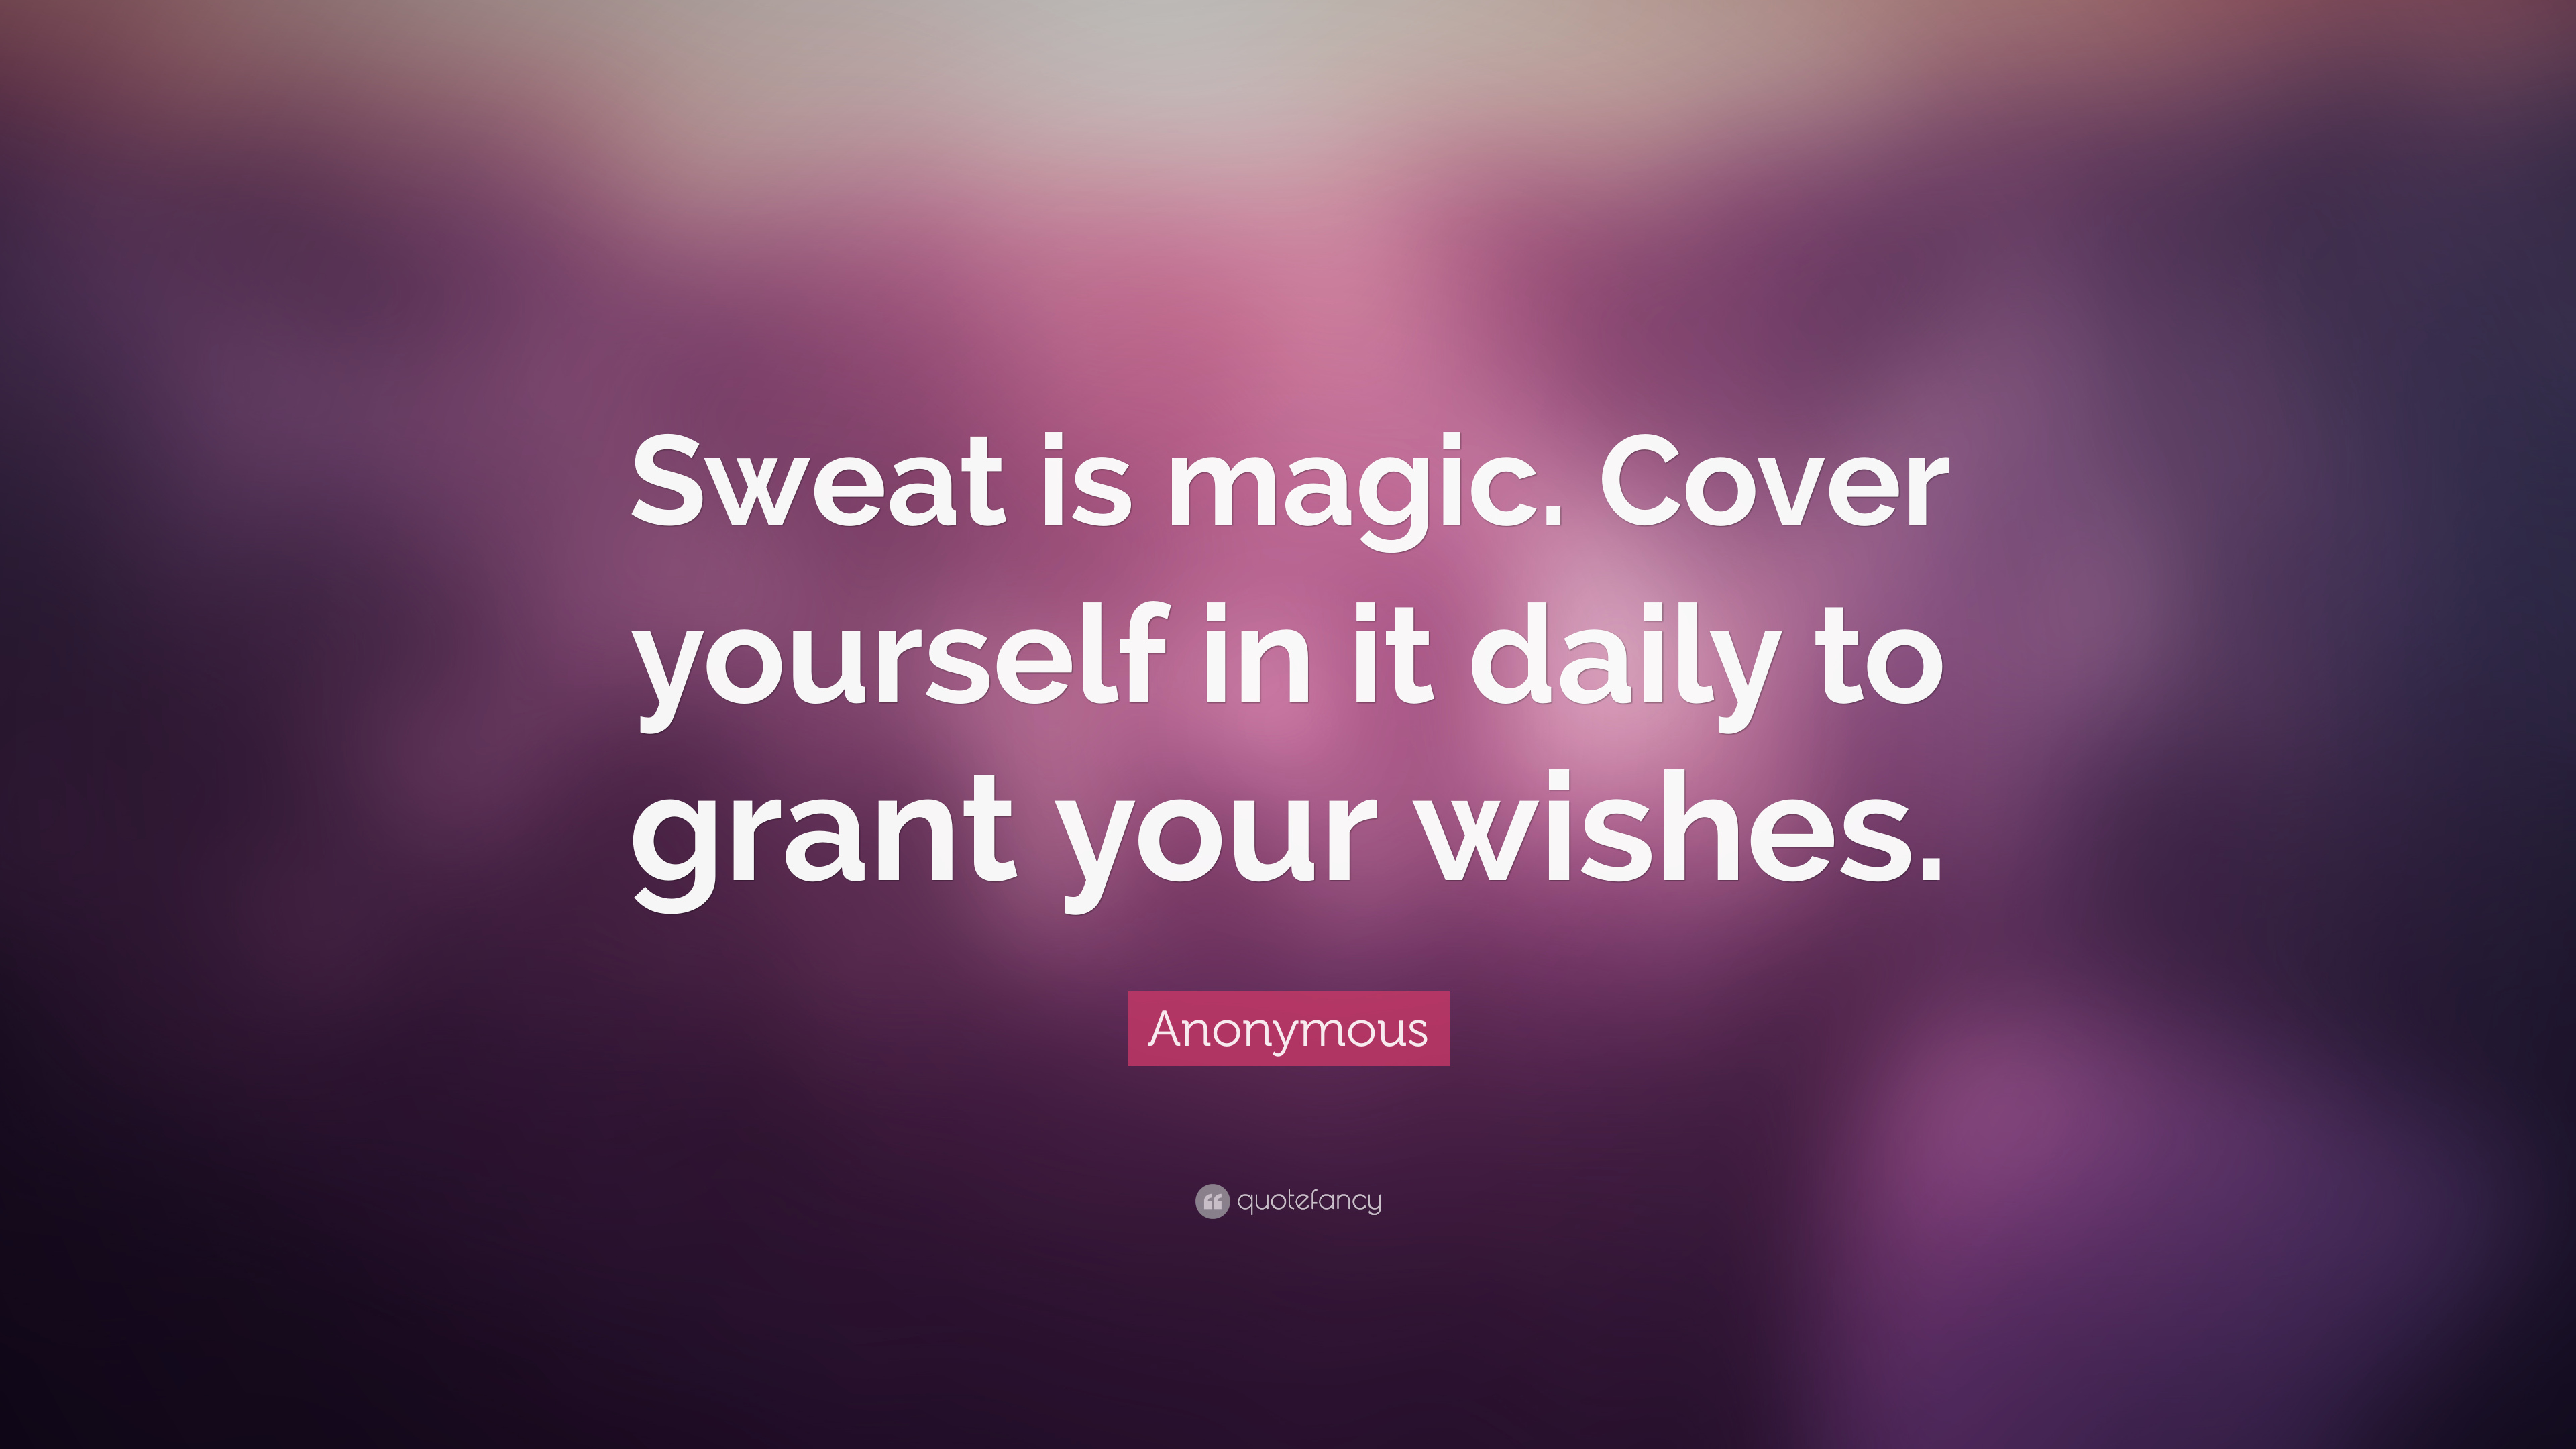 Image of: Designer Anonymous Quote sweat Is Magic Cover Yourself In It Daily To Grant Your Quotefancy Anonymous Quote sweat Is Magic Cover Yourself In It Daily To